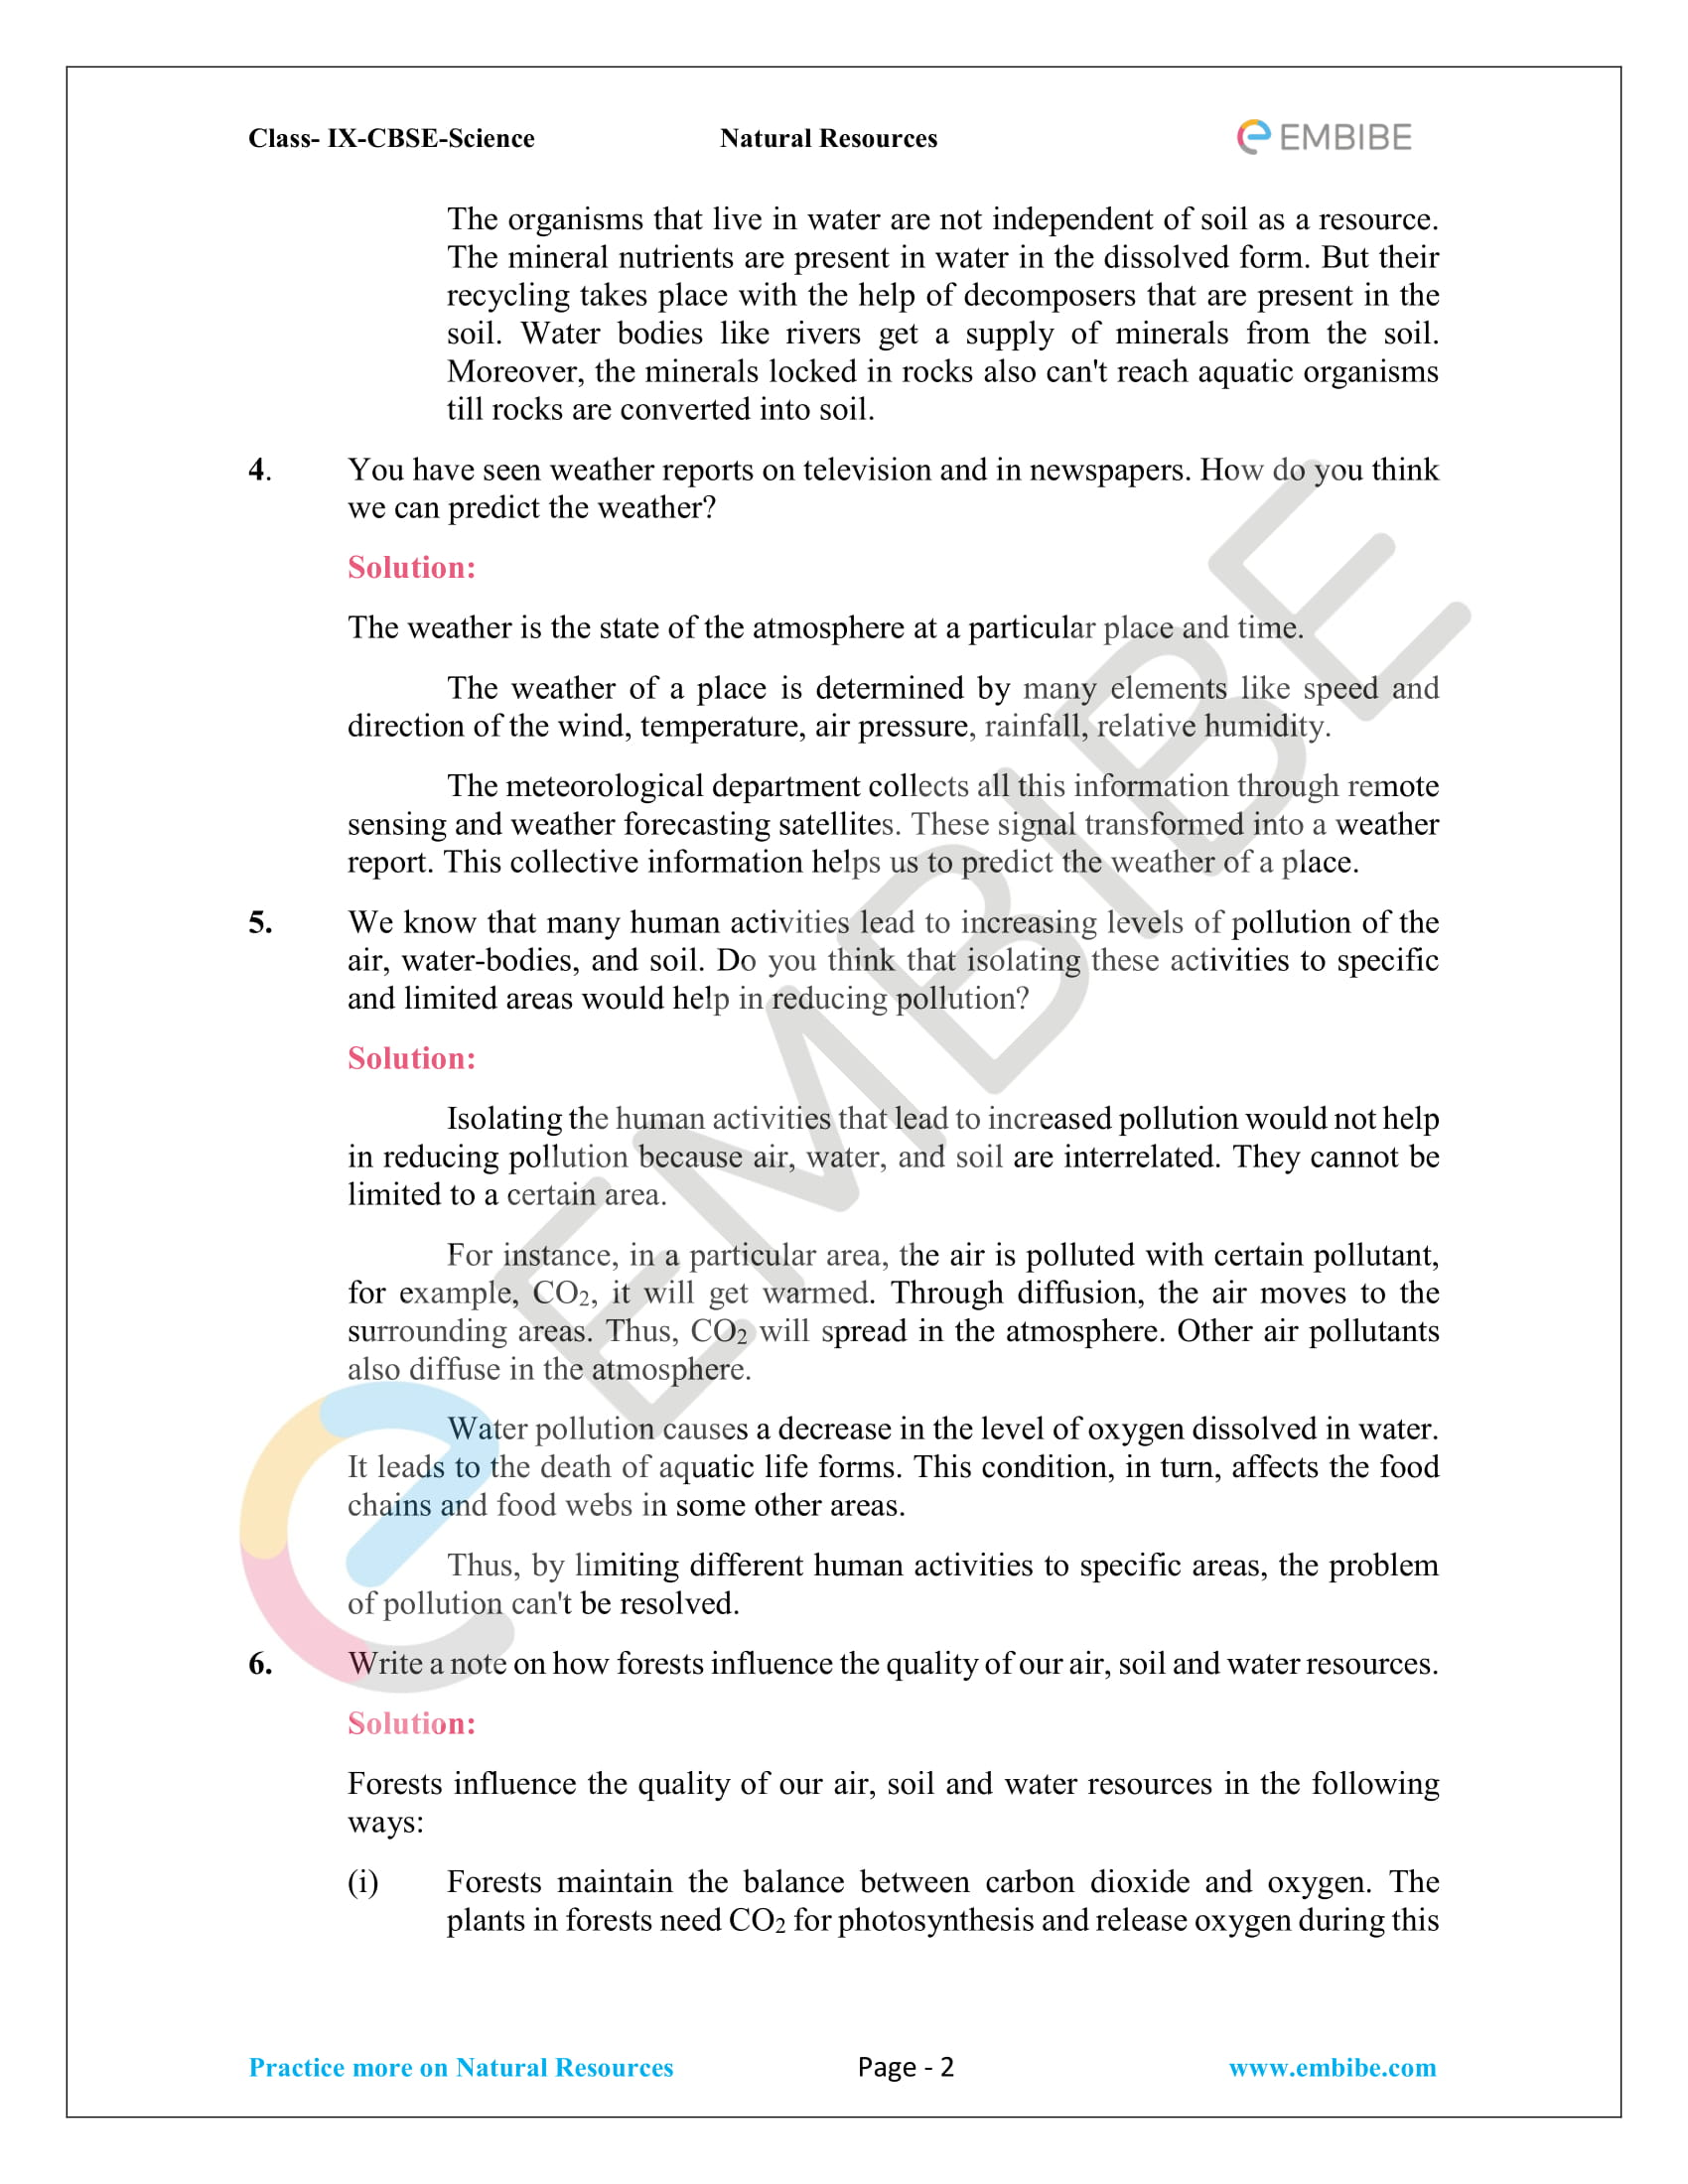 CBSE NCERT Solutions for Class 9 Science Chapter 14-2